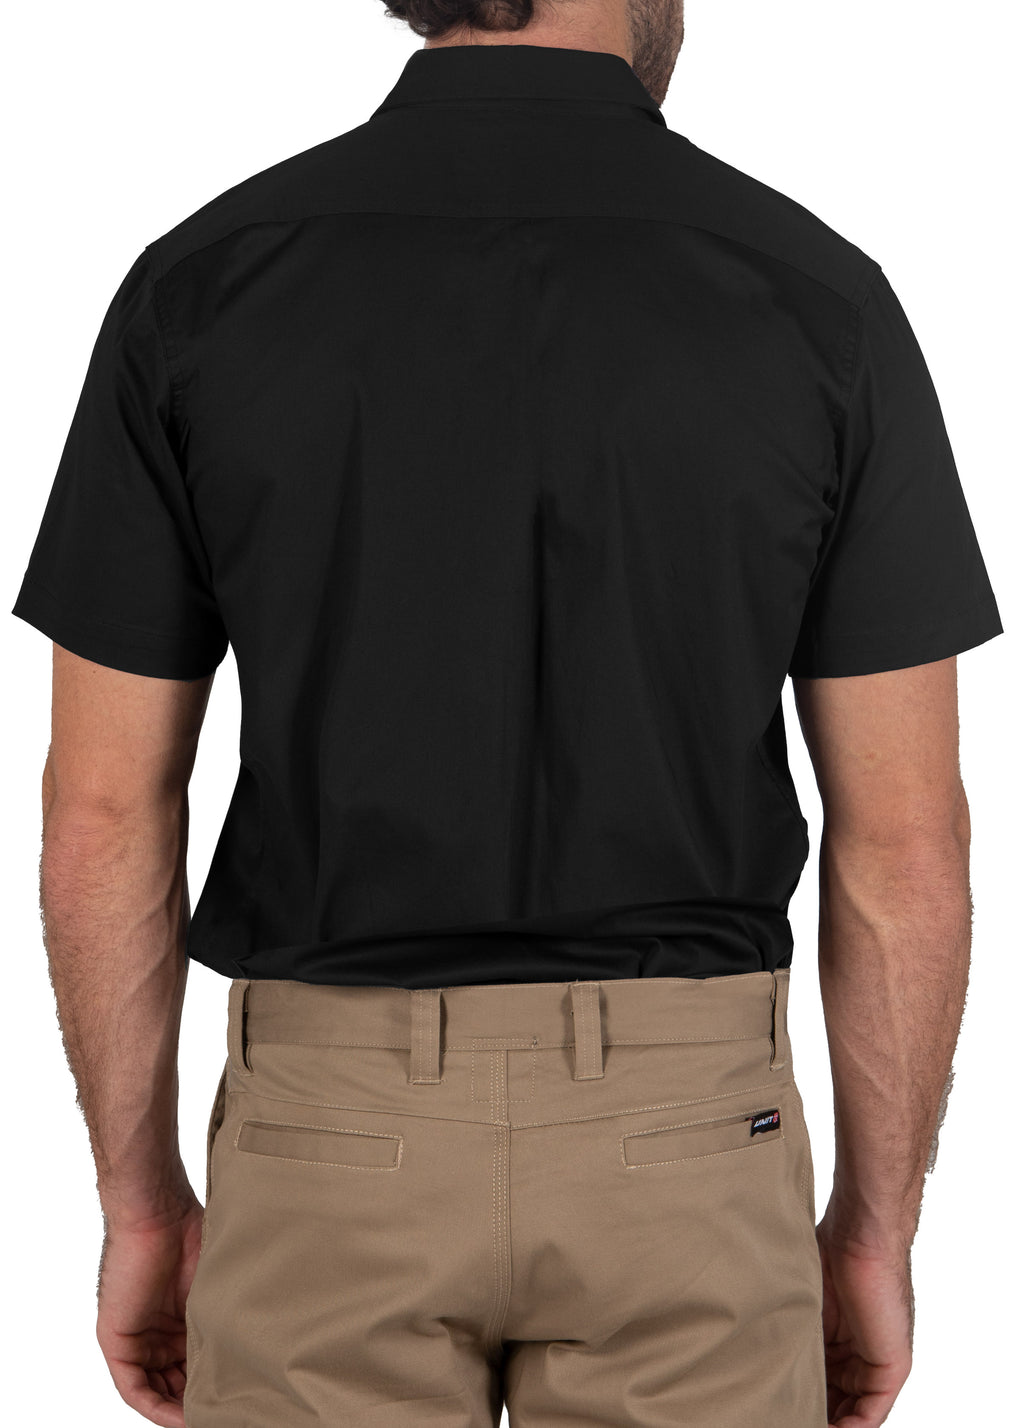 Task Short Sleeve Work Shirt